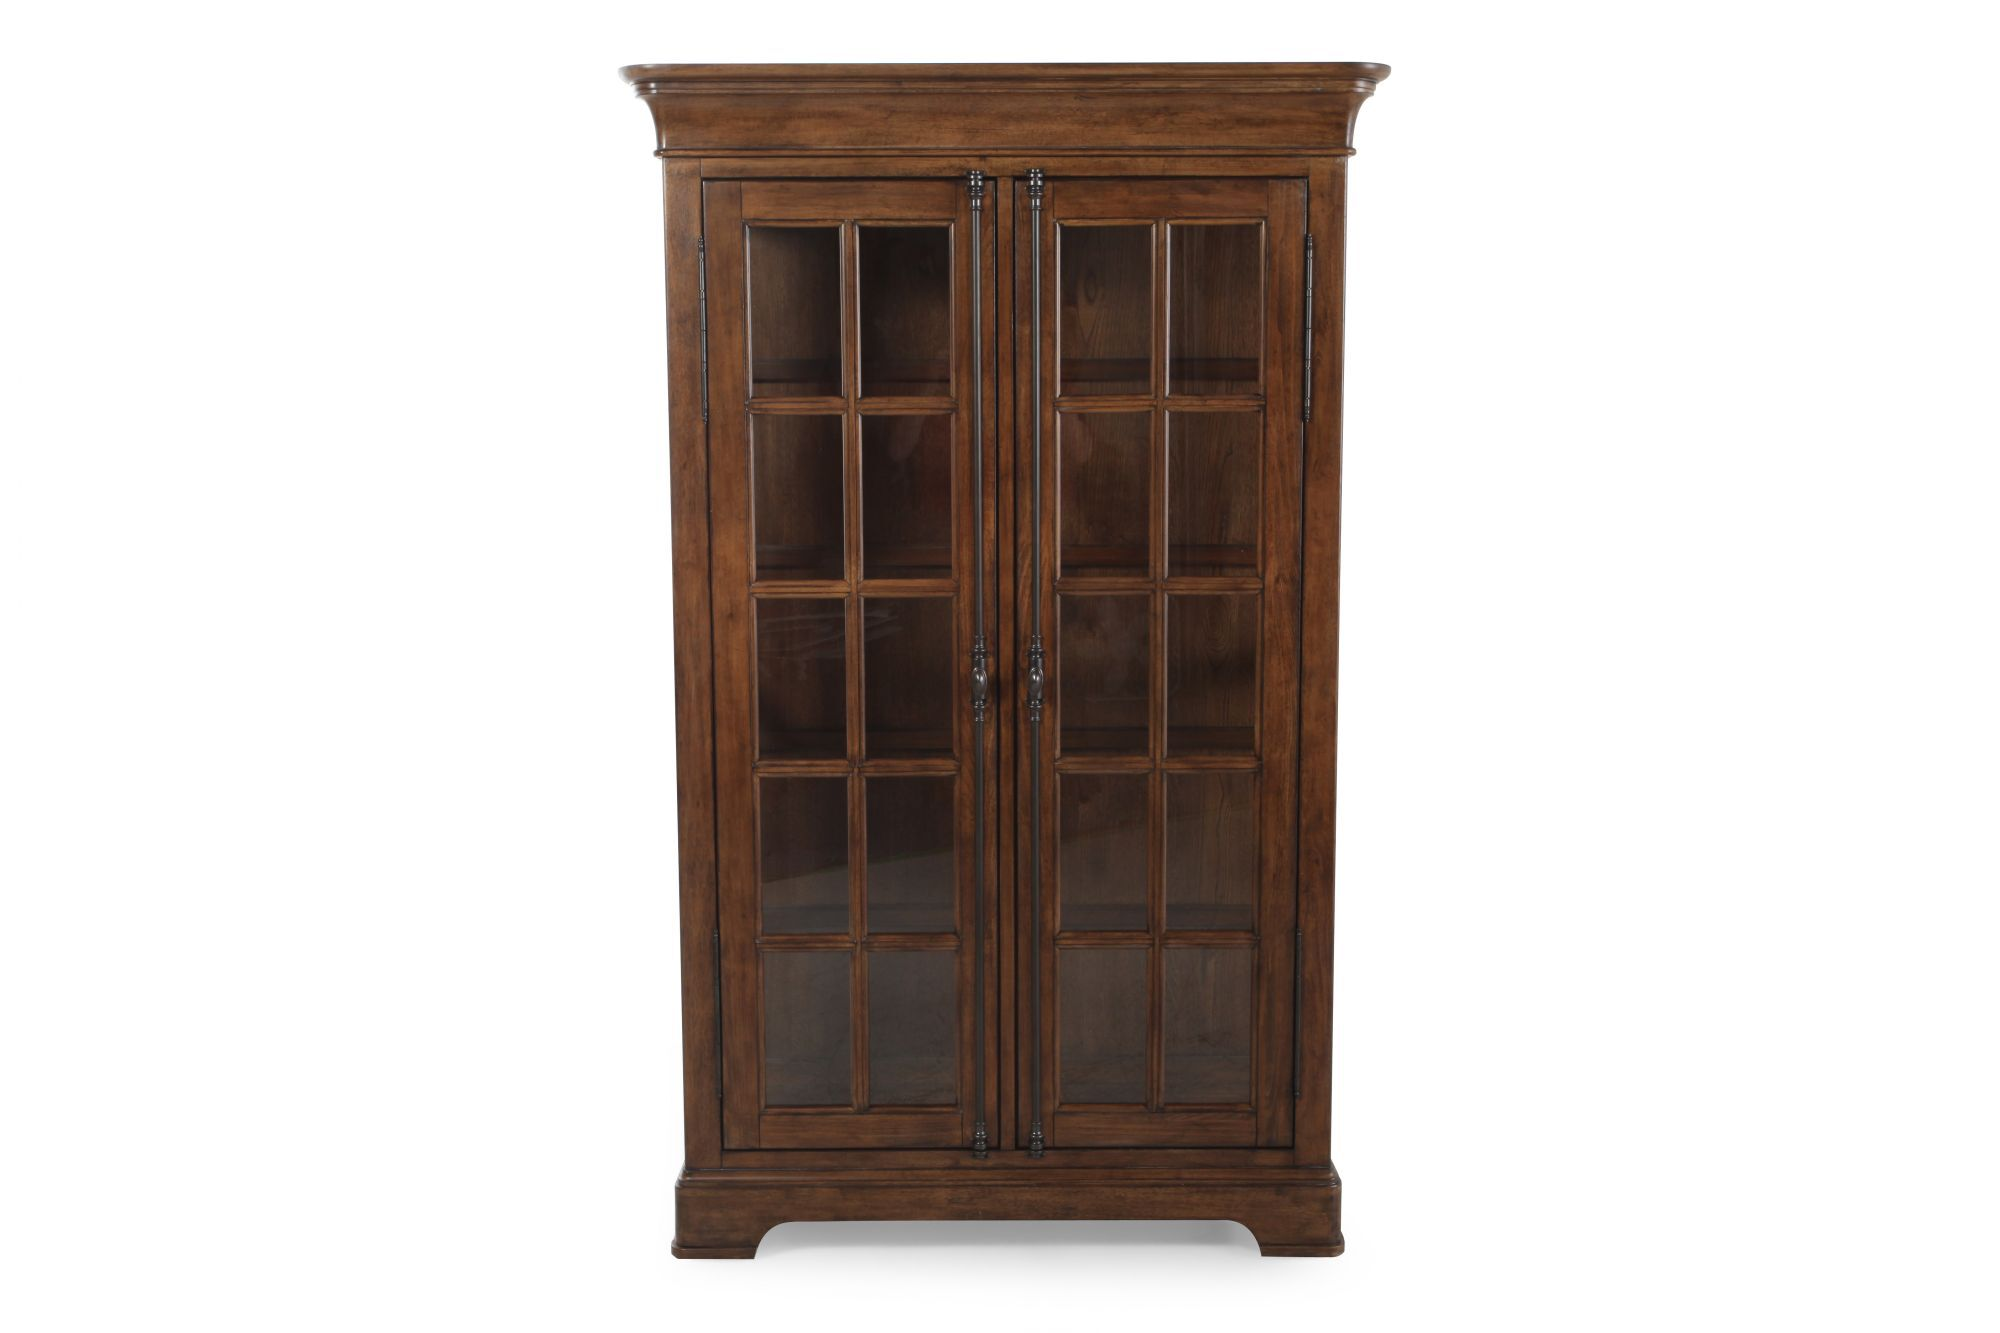 Images Traditional Rectangular Double Door China Cabinetu0026nbsp;in Light Oak  Traditional Rectangular Double Door China Cabinetu0026nbsp;in Light Oak